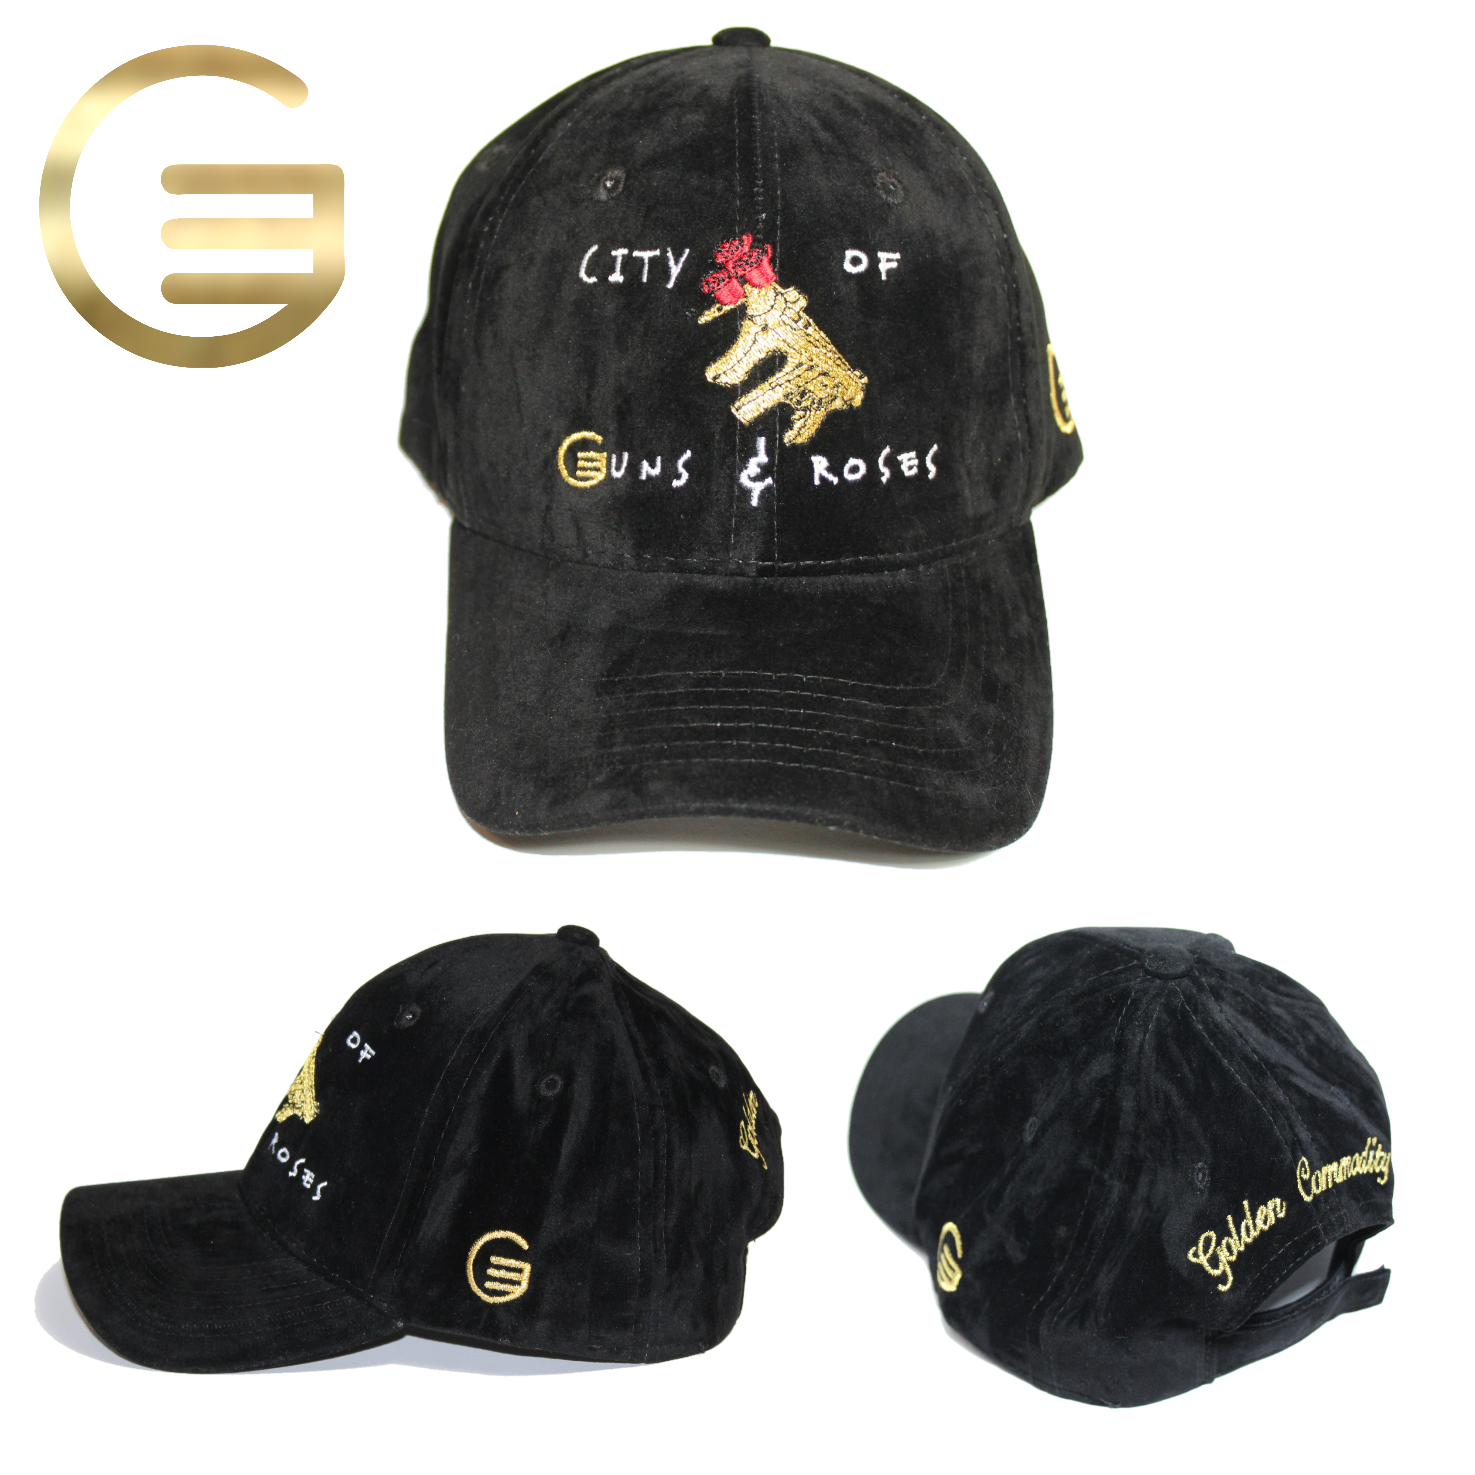 City Of Guns & Roses Collection Black Velvet Hat